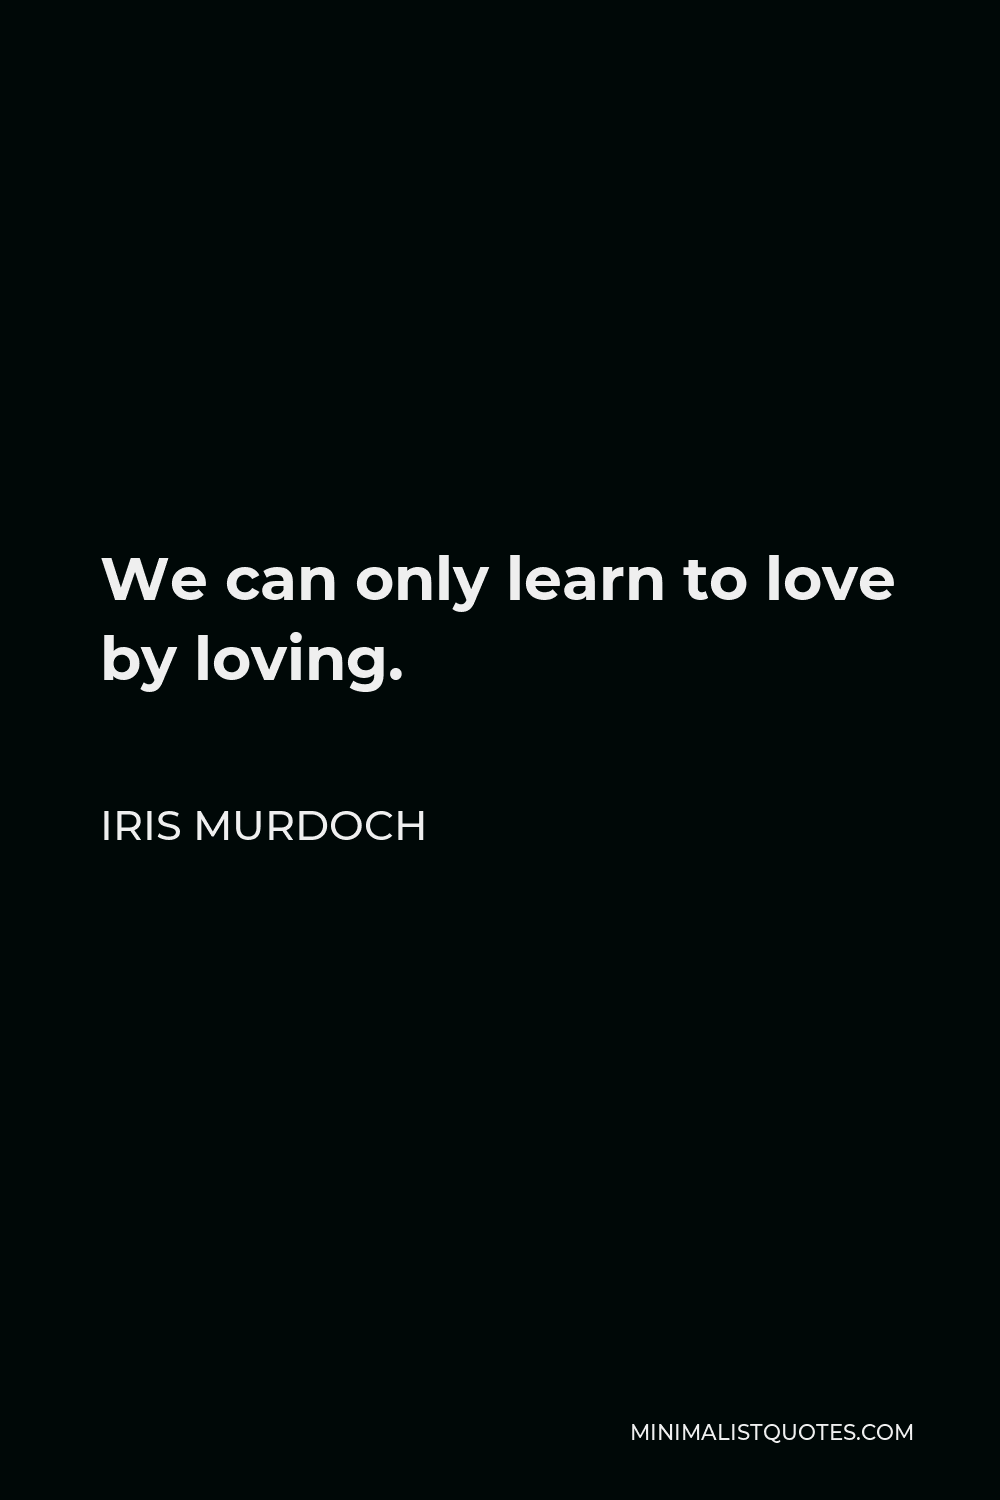 Iris Murdoch Quote - We can only learn to love by loving.